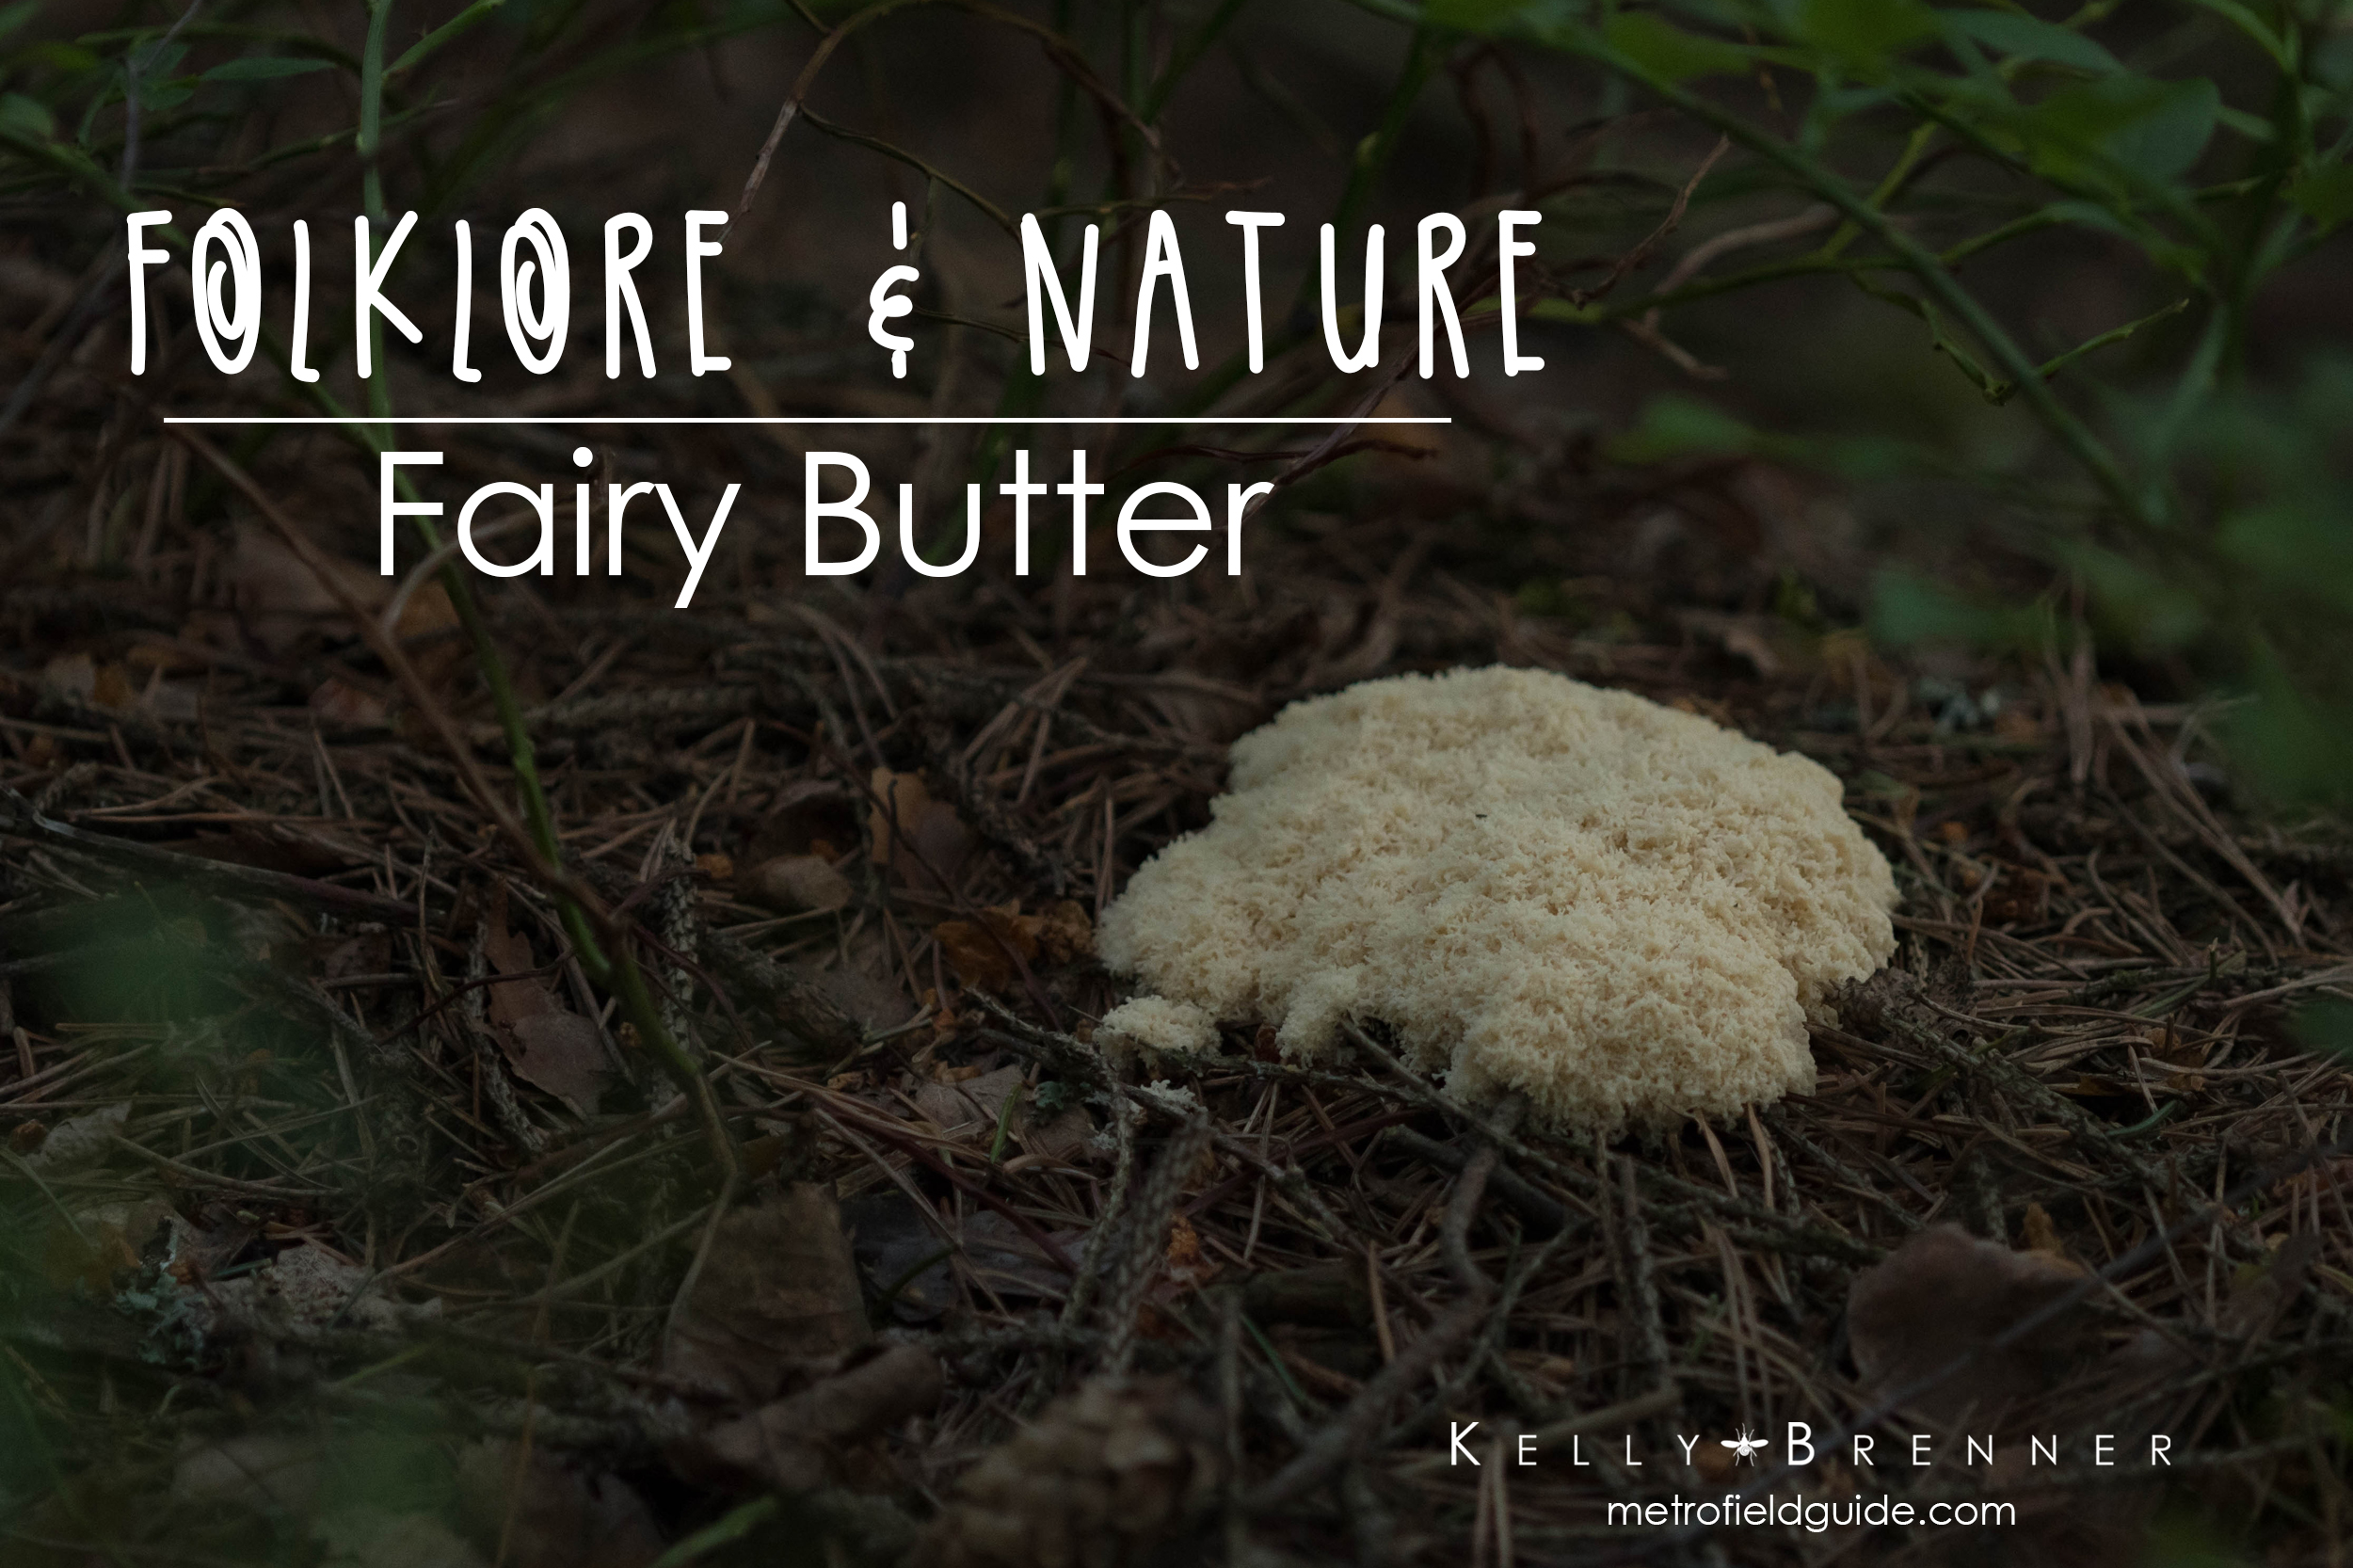 Folklore & Nature: Fairy Butter